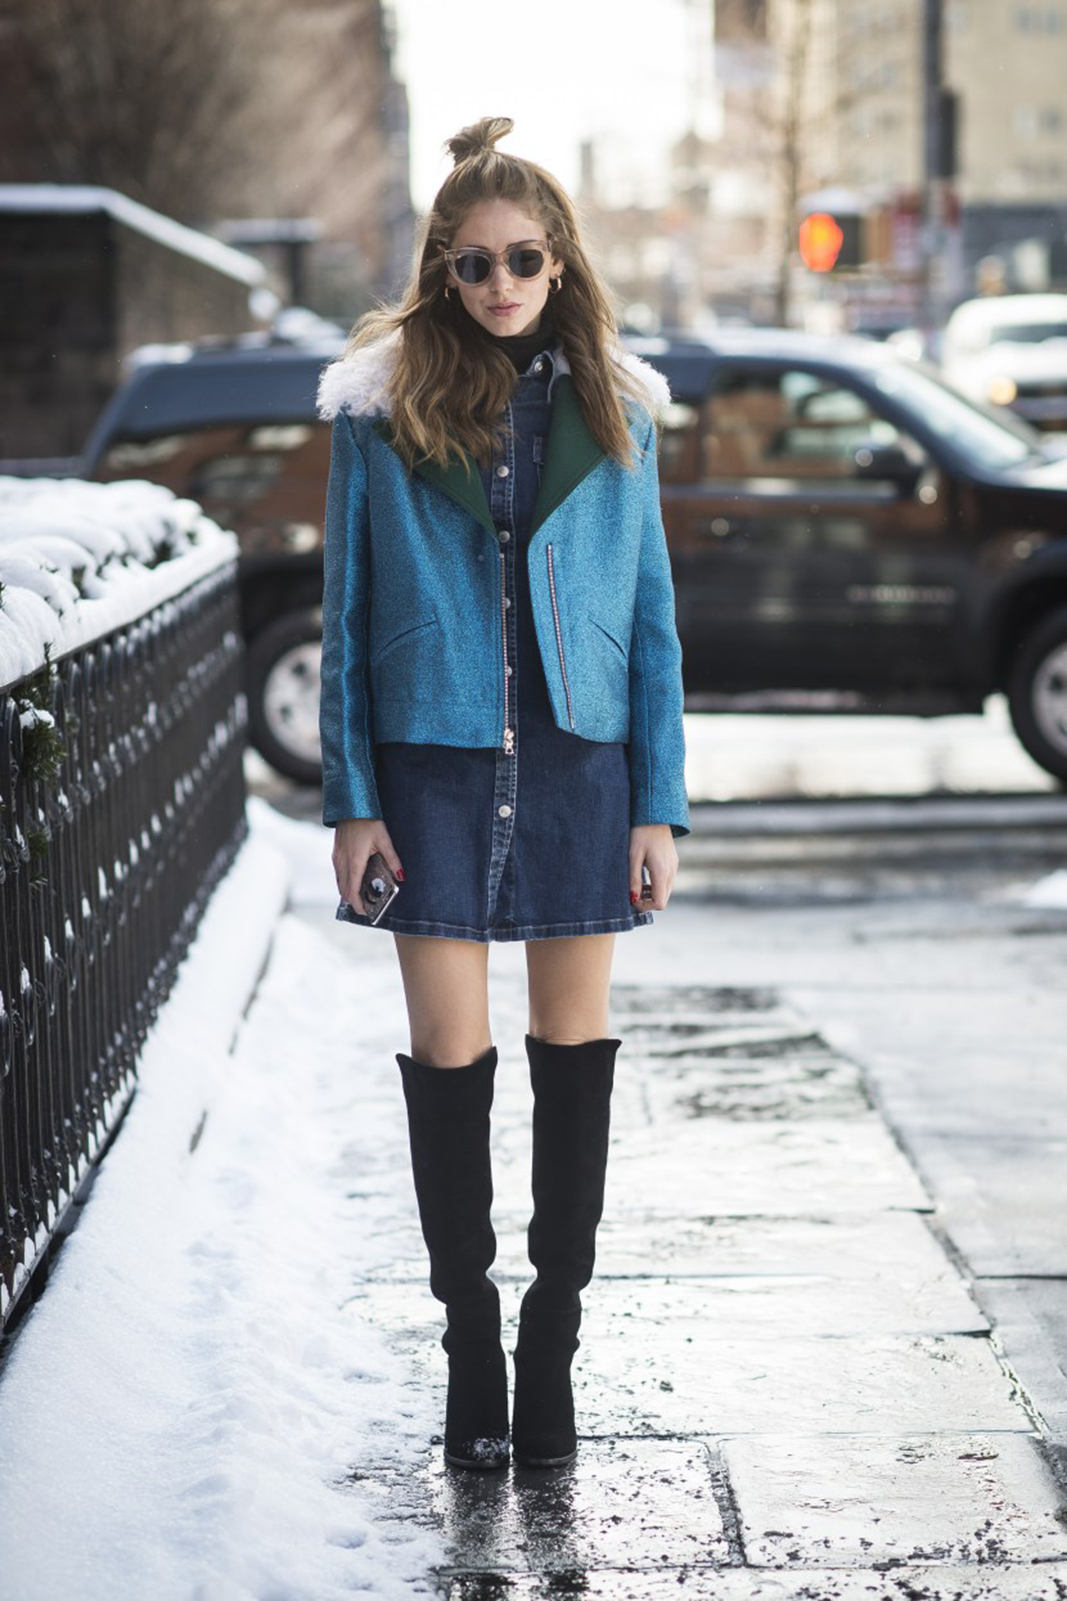 NEW YORK, NY - FEBRUARY 17: Chiara Ferragni is wearing a jacket from Rodarte, glasses from Celine, and a jeansdress from agjeans and alexachung at Streets of Manhattan on February 17, 2015 in New York City. (Photo by Timur Emek/Getty Images)